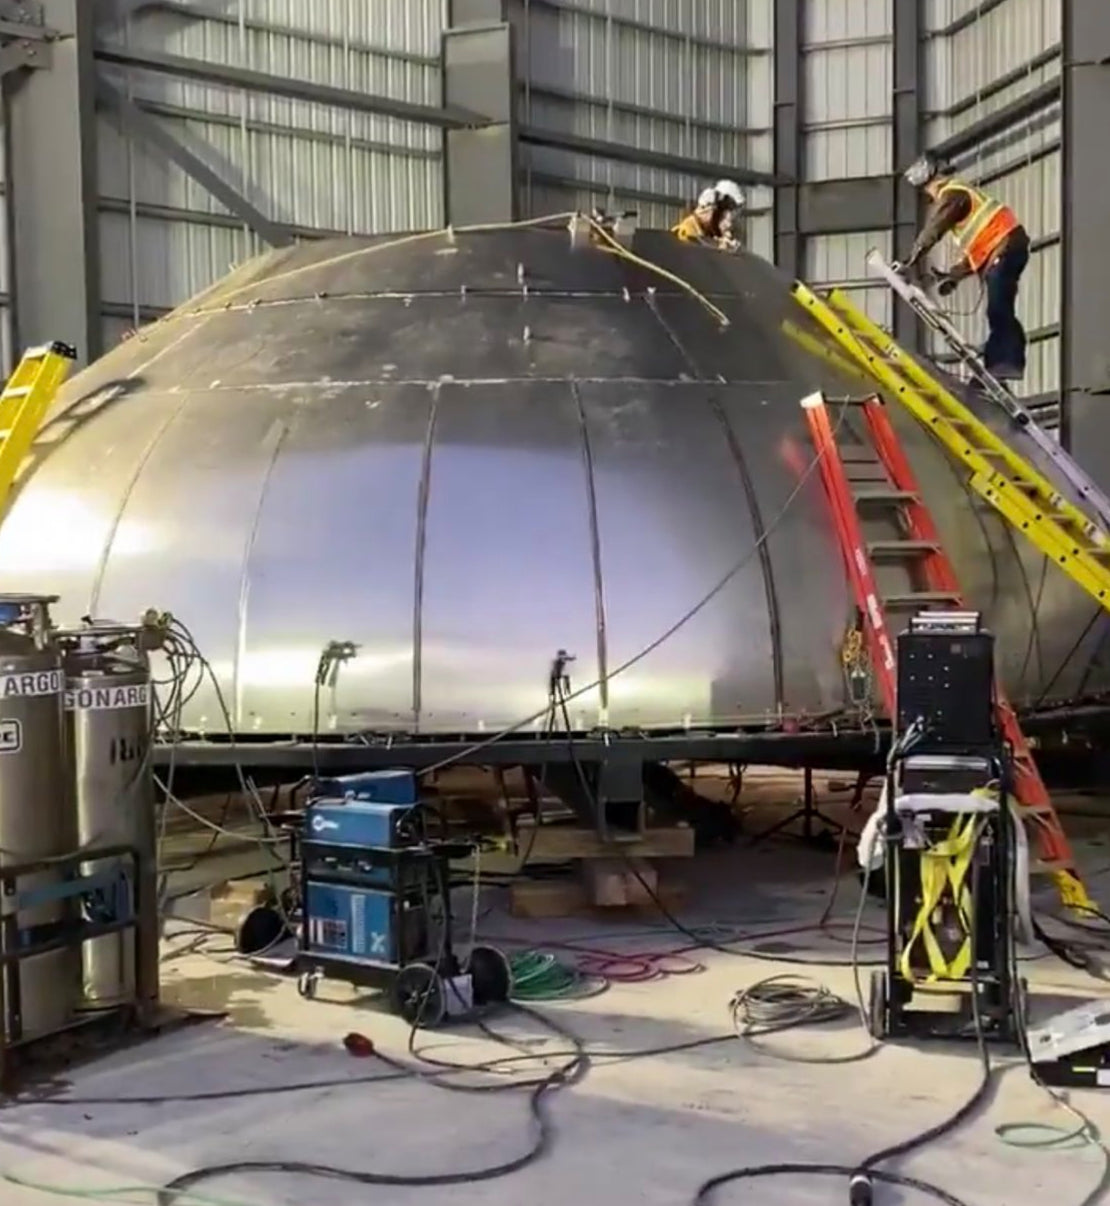 Elon Musk is working alongside SpaceX teams on Starship Mk3 at Boca Chica